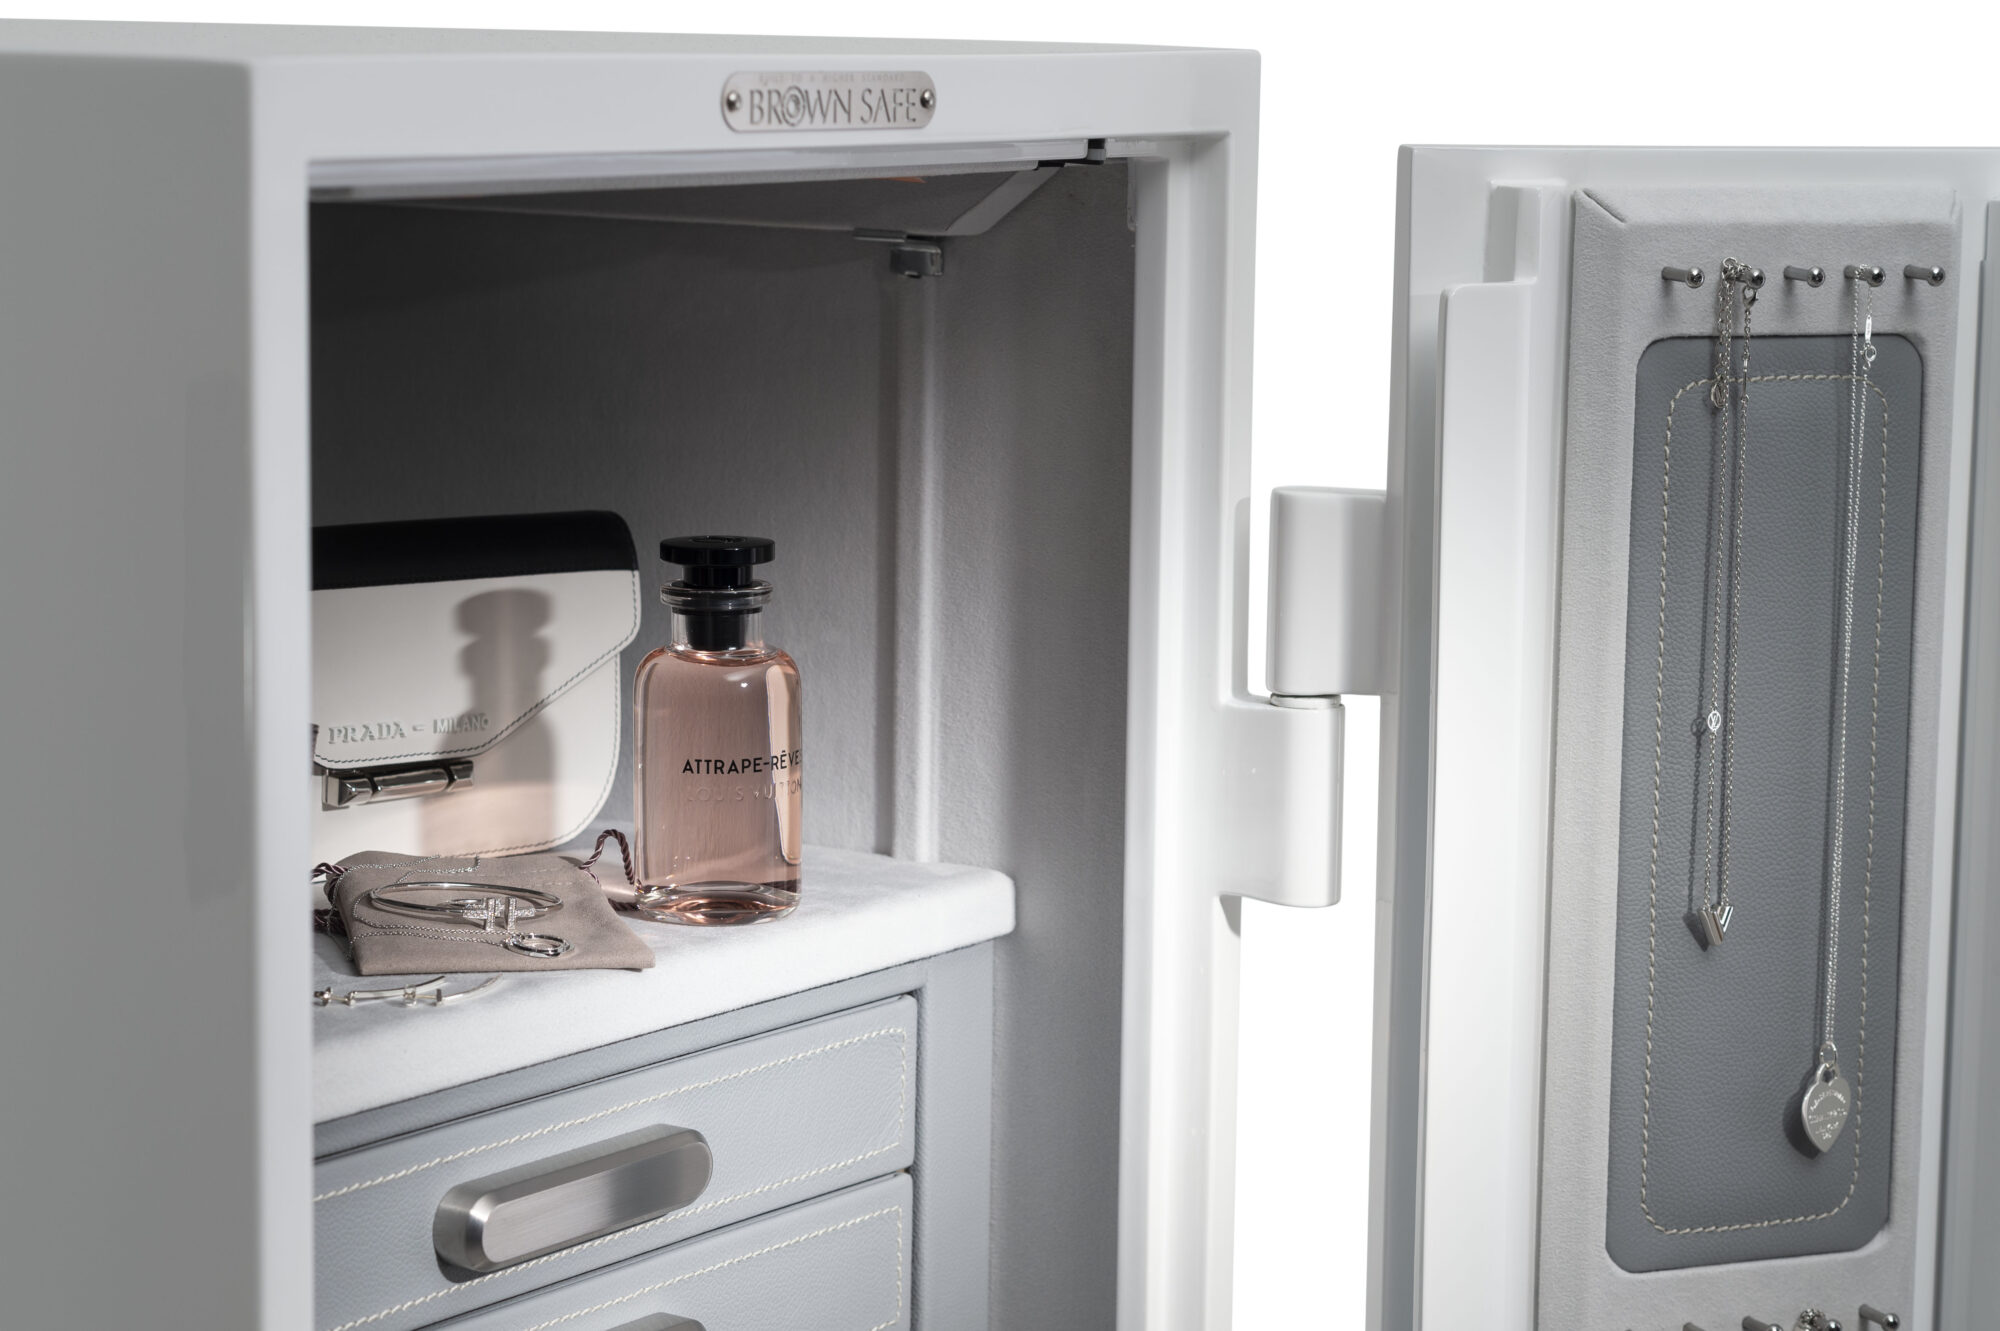 jewelry drawers closed with perfume